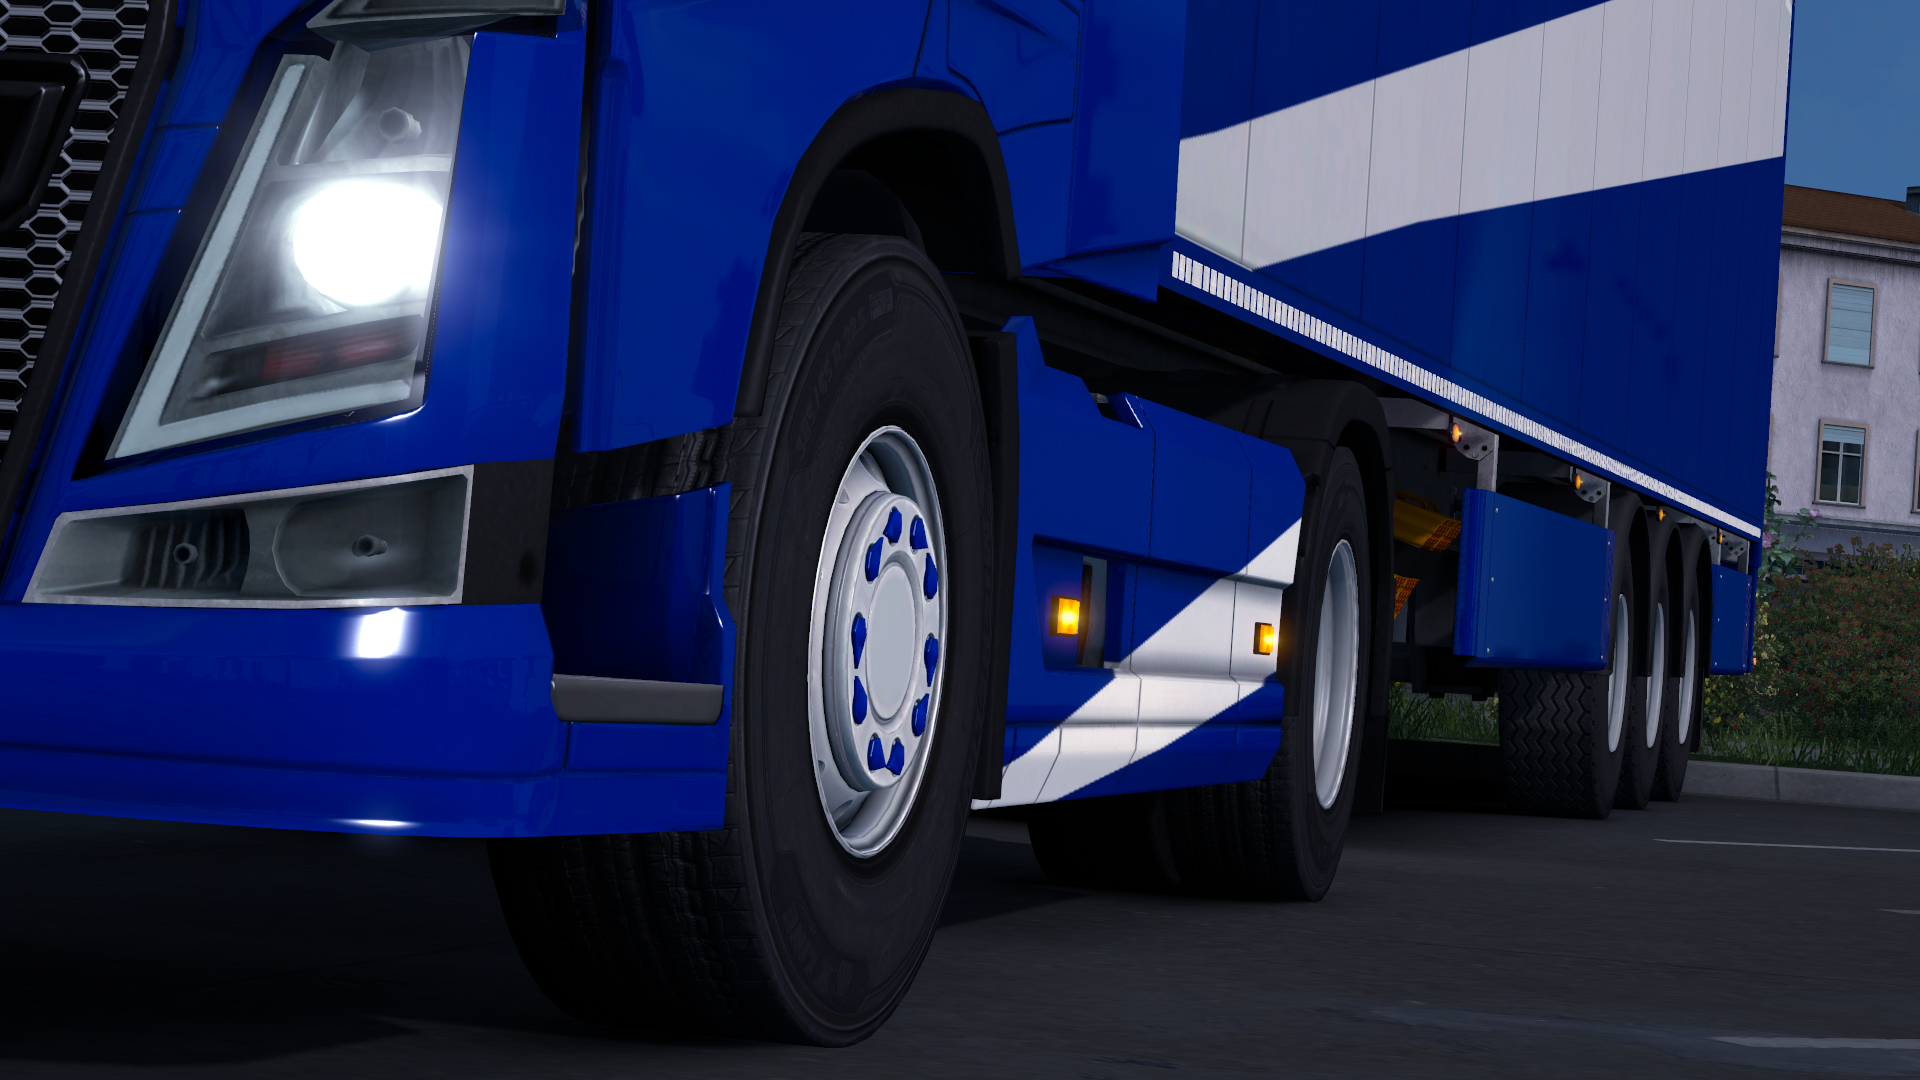 ets2_20190225_043057_00.png